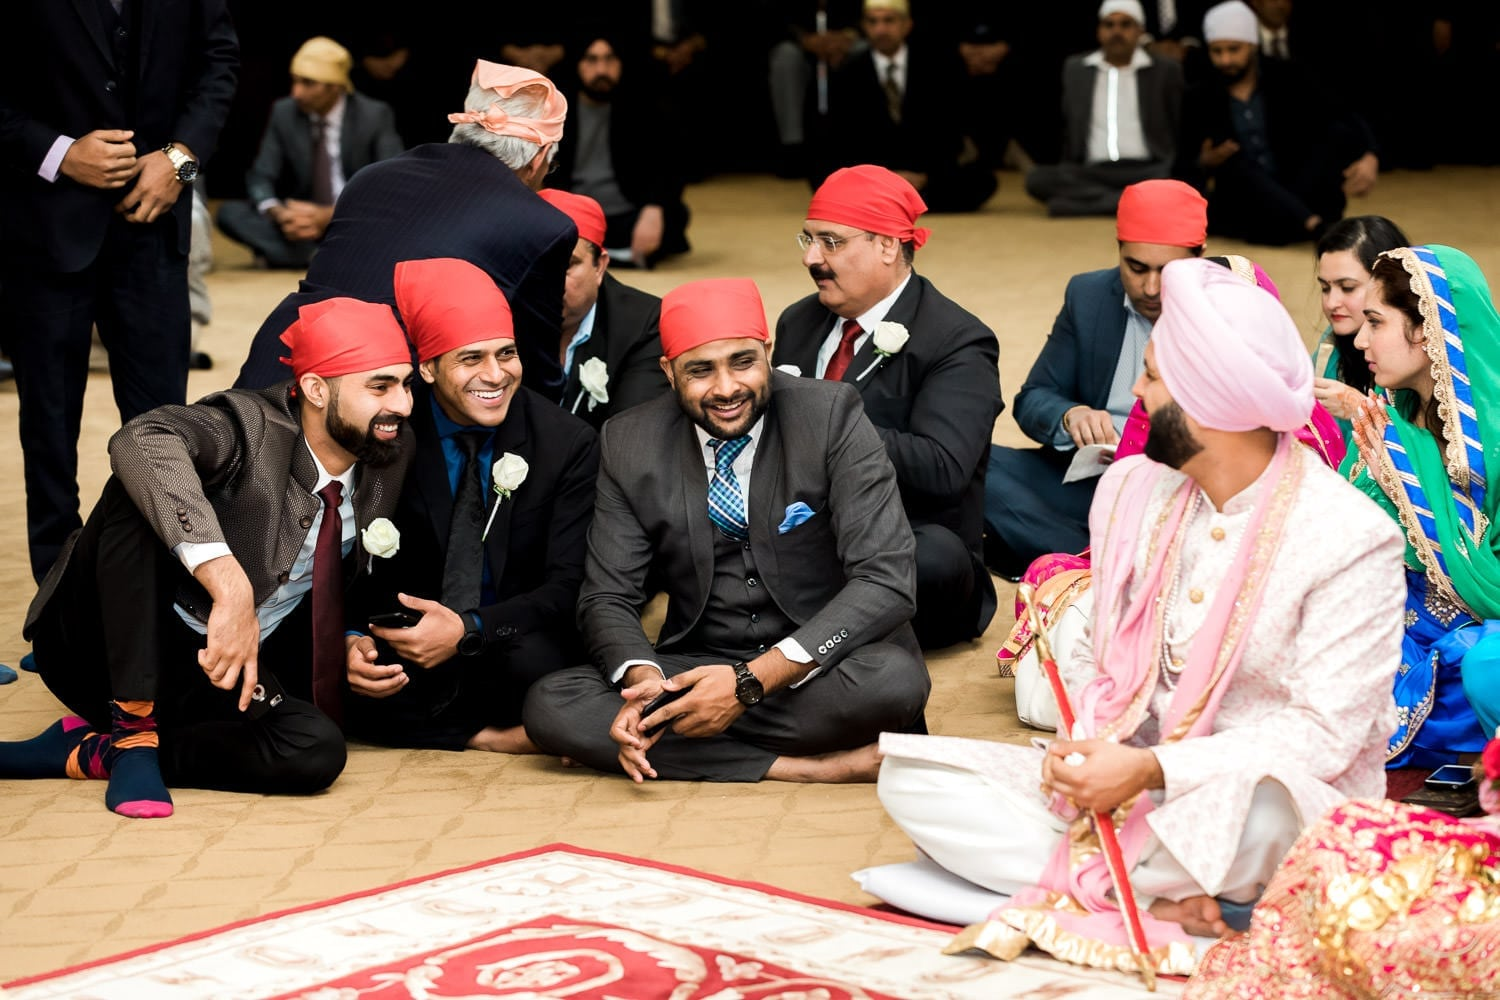 Indian groomsmen at the temple | Indian wedding photography Vancouver